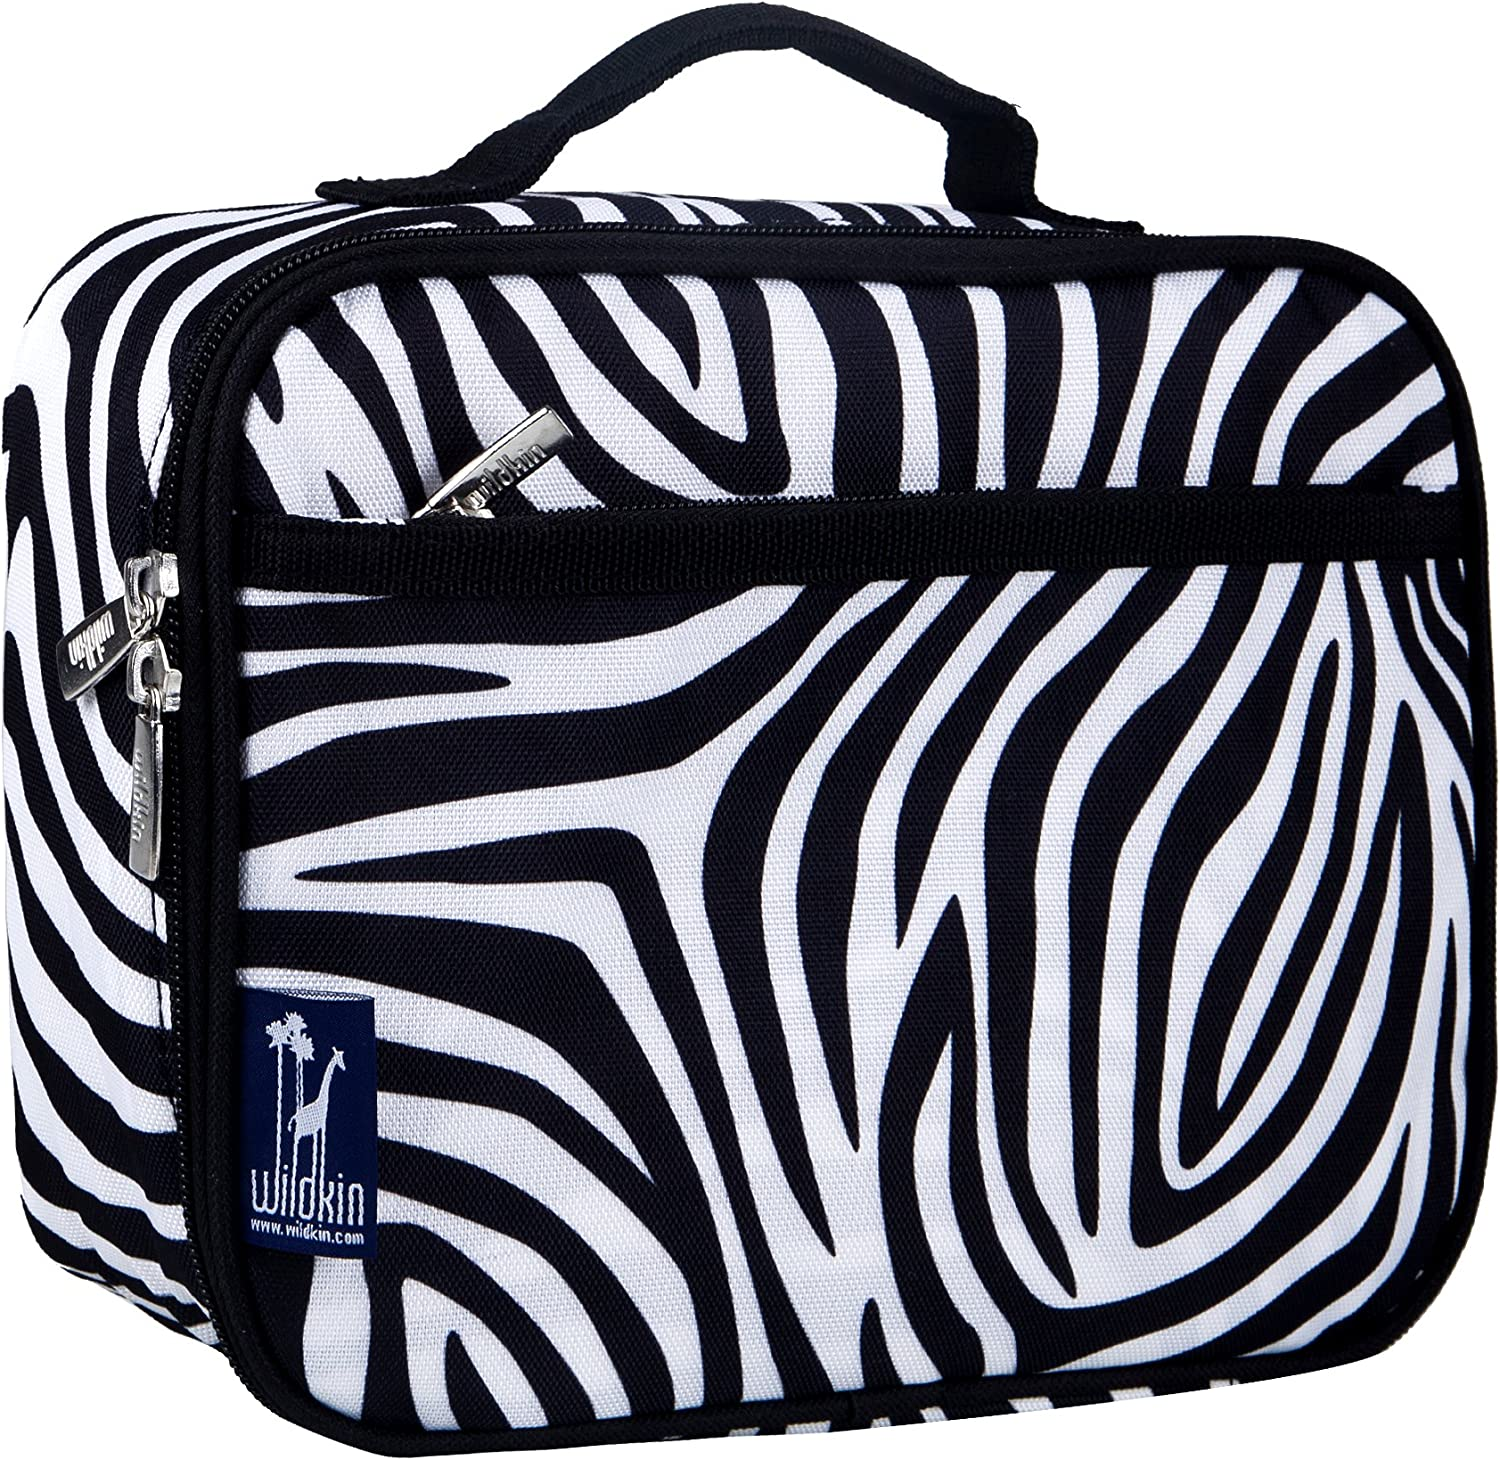 Wildkin Kids Insulated Lunch Box for Boys and Girls, Perfect Size for Packing Hot or Cold Snacks for School and Travel, Measures 9.75 x 7.5 x 3.25 Inches, Mom's Choice Award Winner (Zebra)